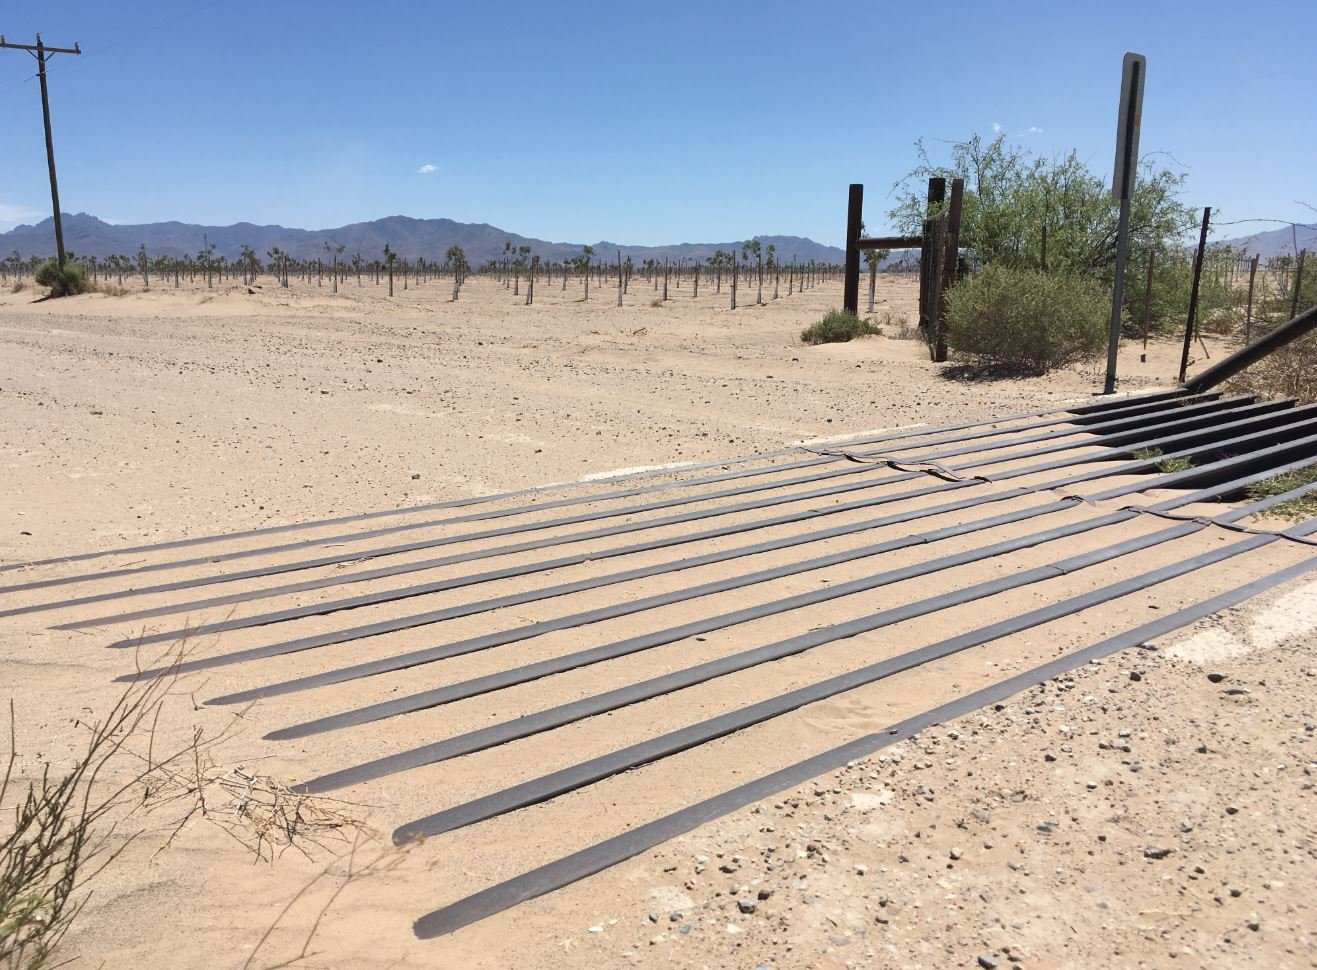 Dust problems may continue in southeastern Arizona. (Source: KPHO/KTVK)